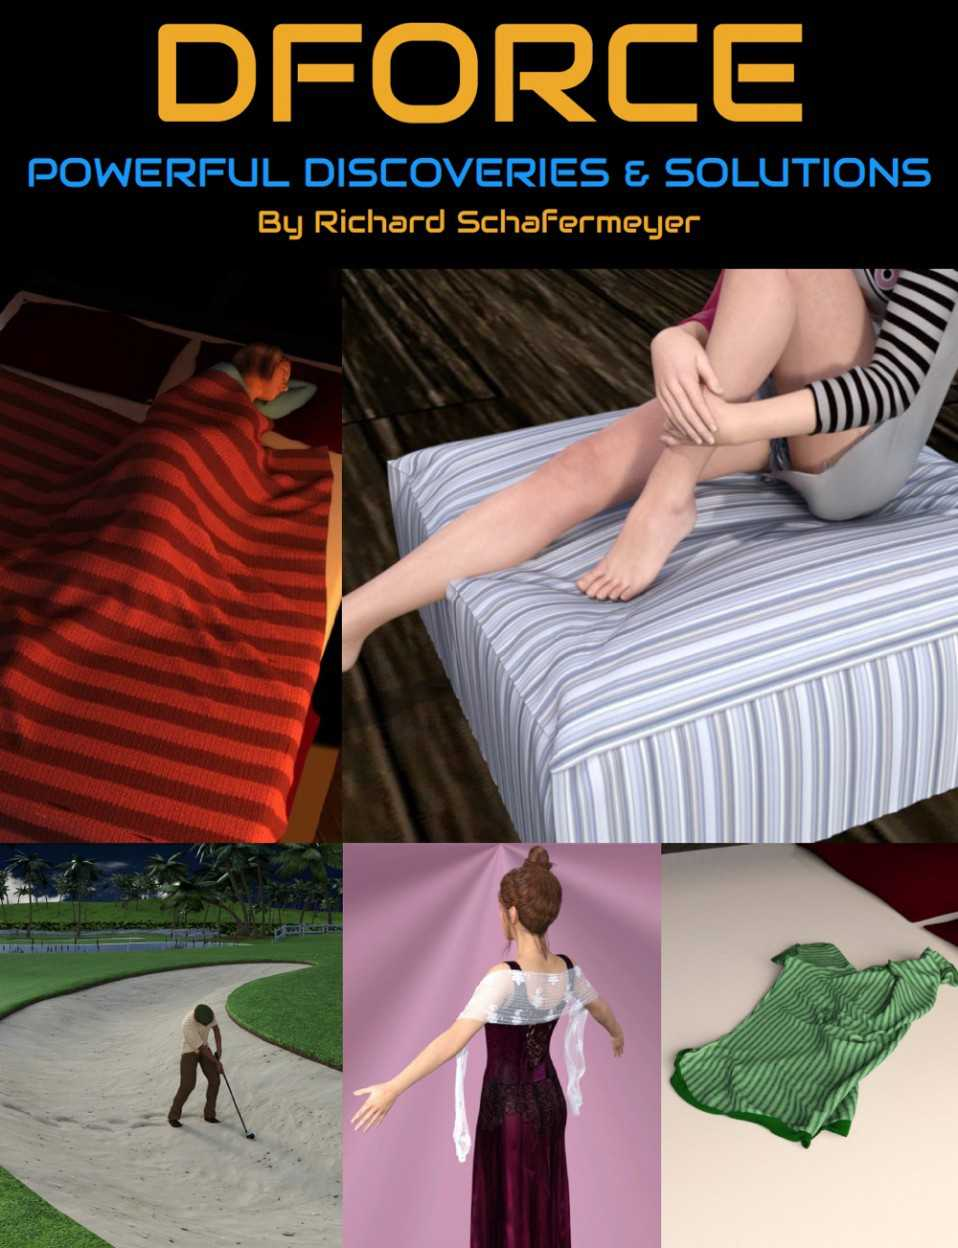 Powerful dForce Discoveries and Solutions